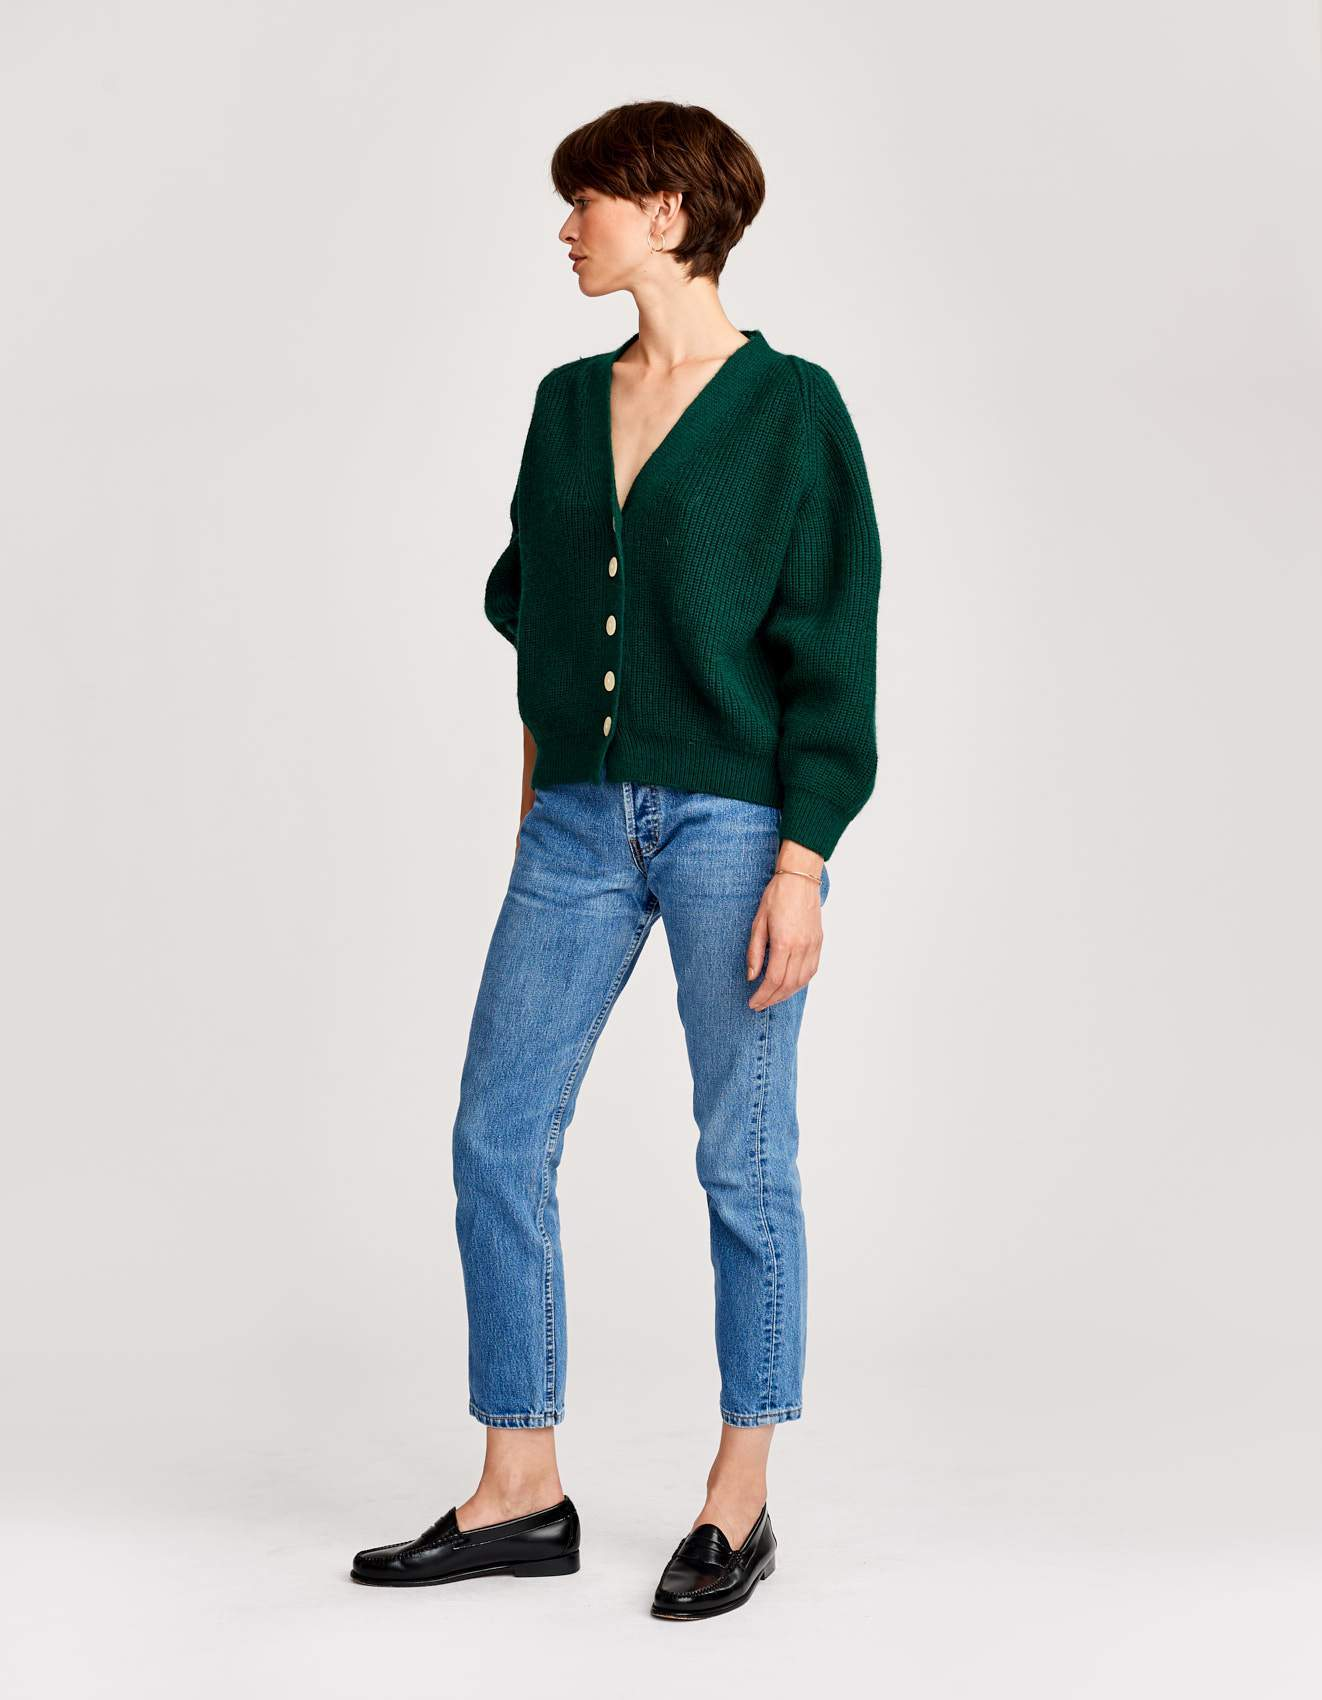 Bellerose green oversized knit cardigan for women